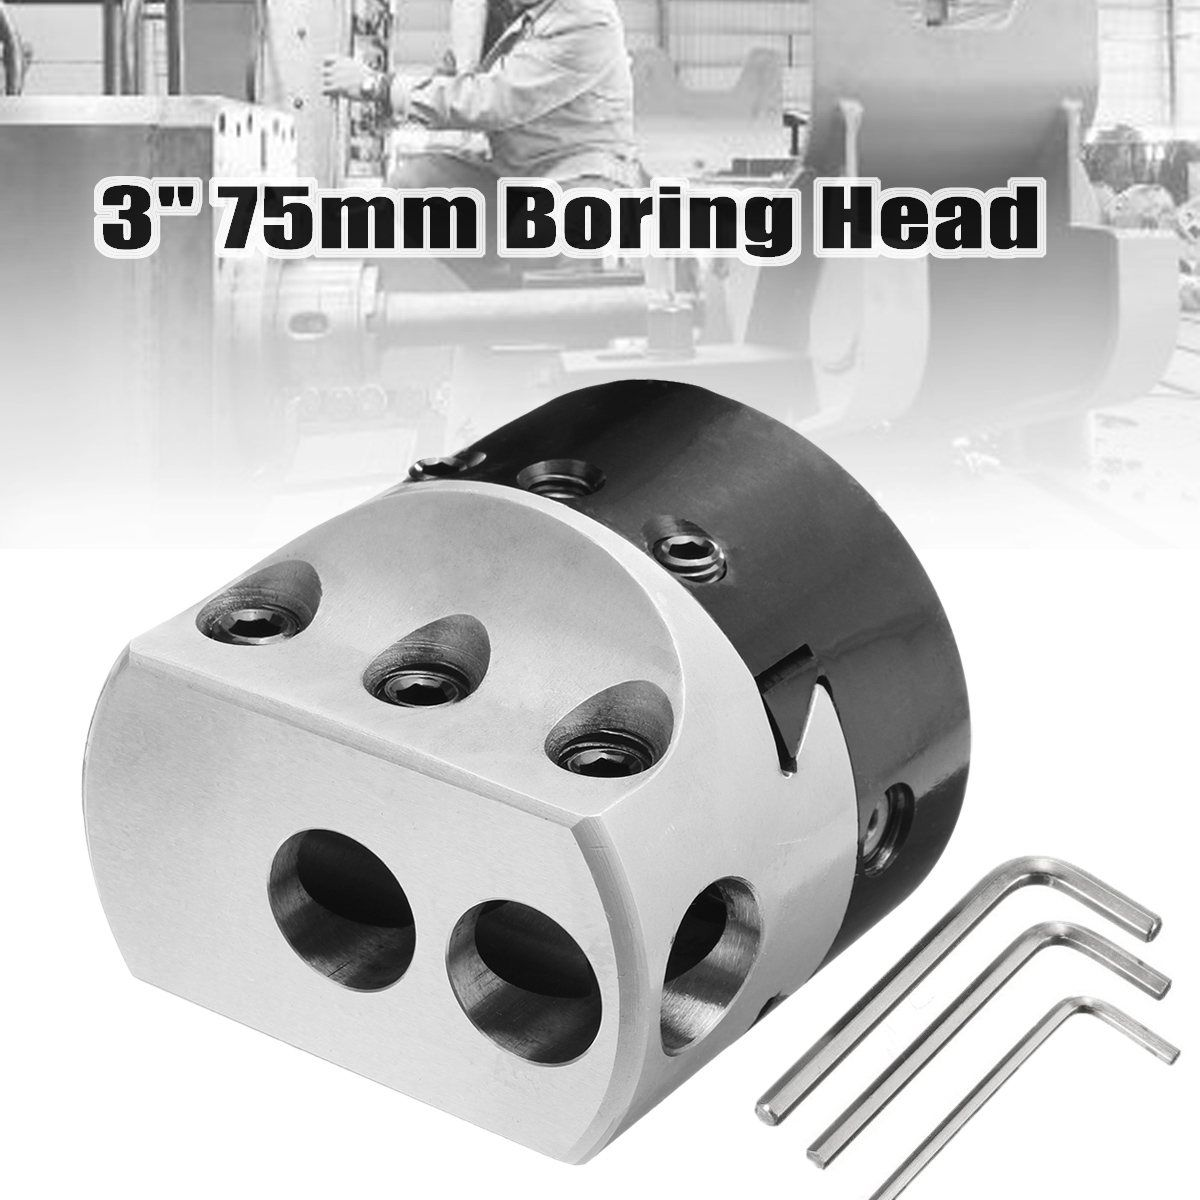 New 3'' 75mm Boring Head Lathe Milling Tool Holder +3 Wrench for 3/4'' Hole Boring Cut